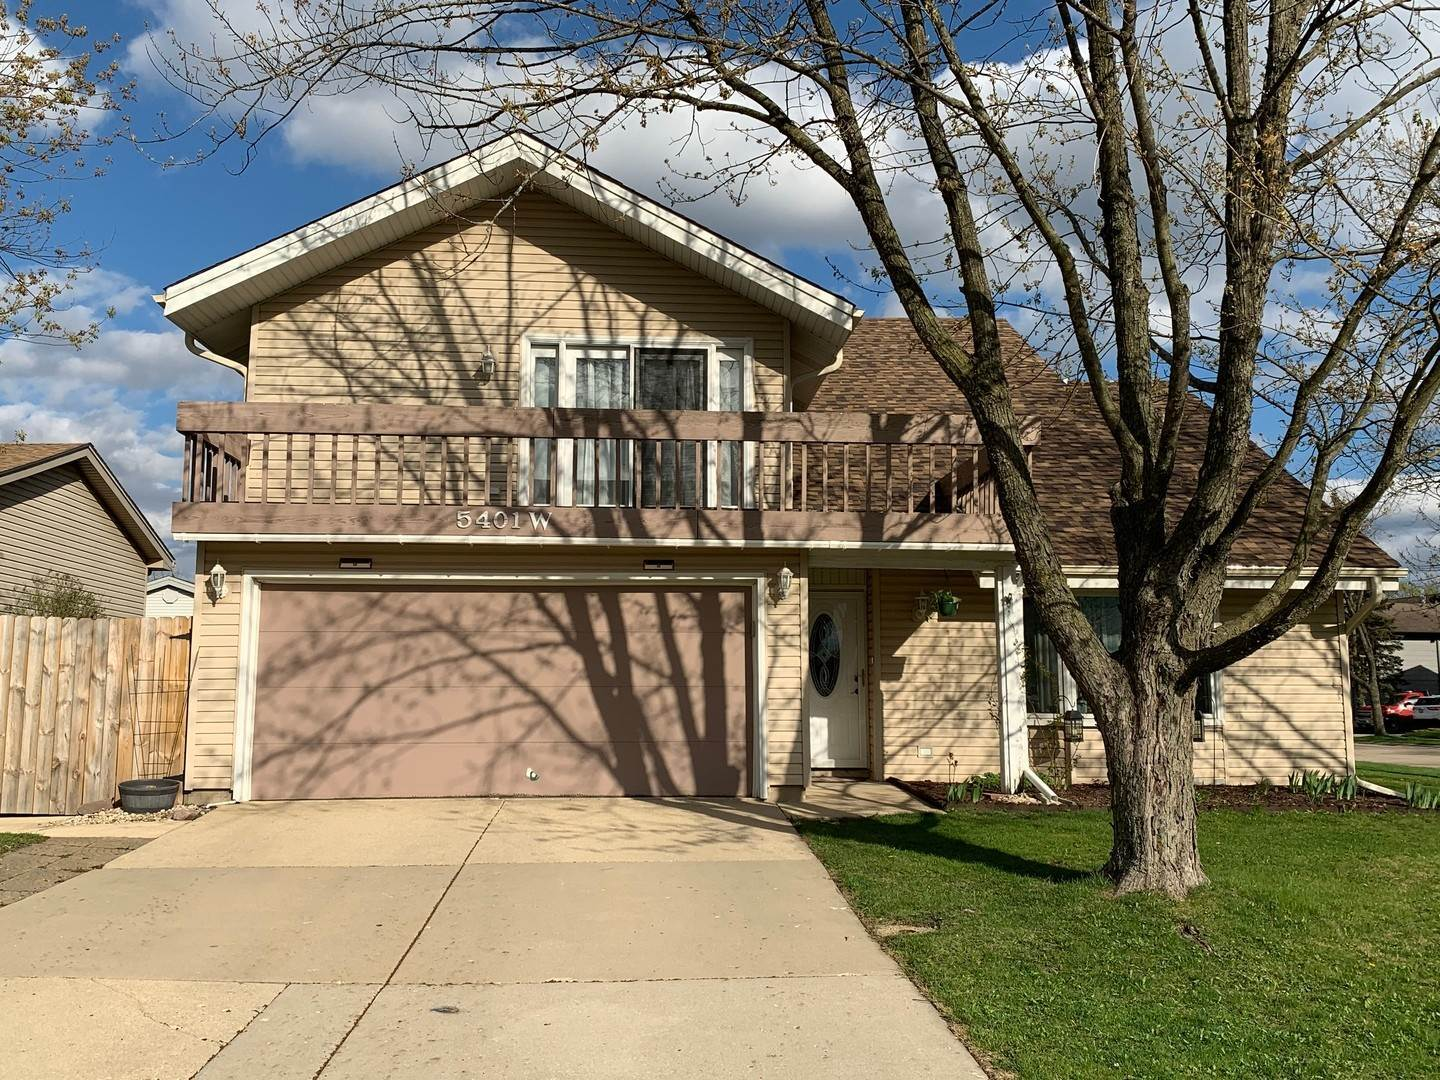 Single Family Homes for Sale at 5401 W Arlington Drive Hanover Park, Illinois 60133 United States